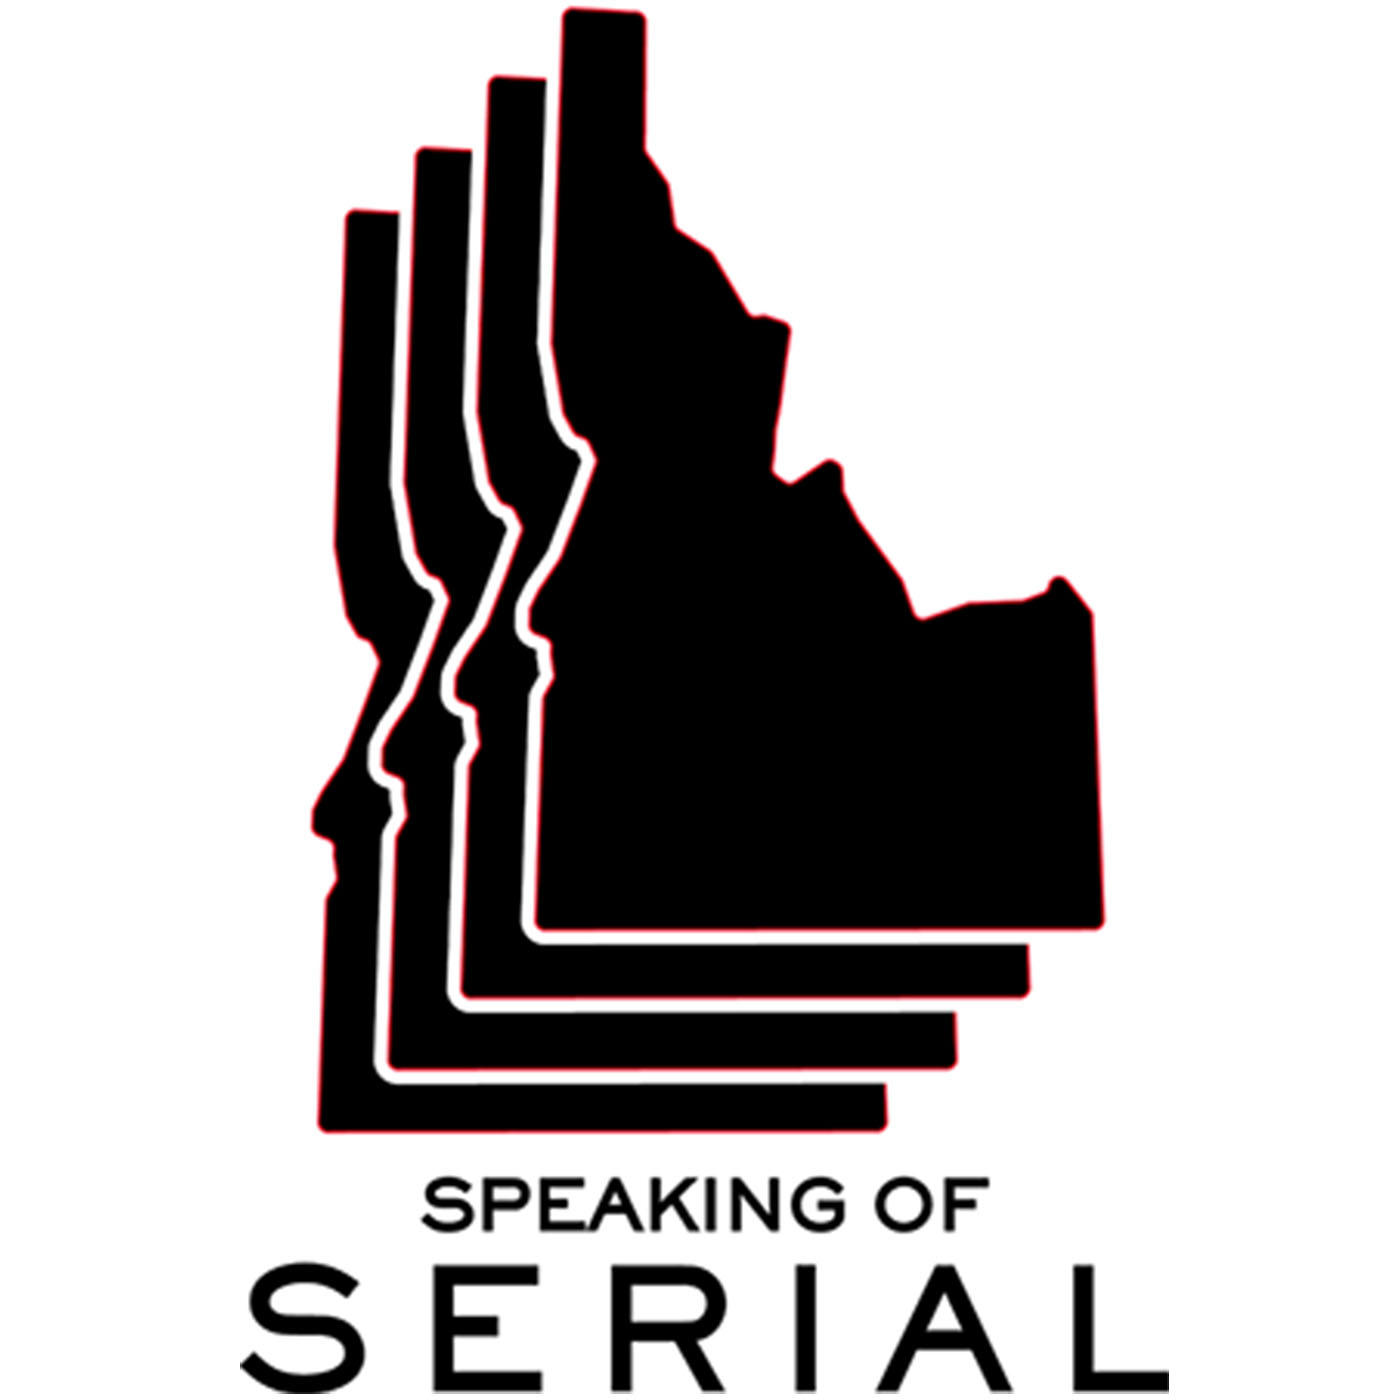 Speaking of serial - This is a podcast abouta podcast. Listen along with us as reporters from Boise State Public Radio and the Idaho Statesman sit down to talk about Serial, the wildly popular This American Life podcast, which focused its second season on a story many in Idaho are already familiar with: the story of Army Sergeant Bowe Bergdahl.